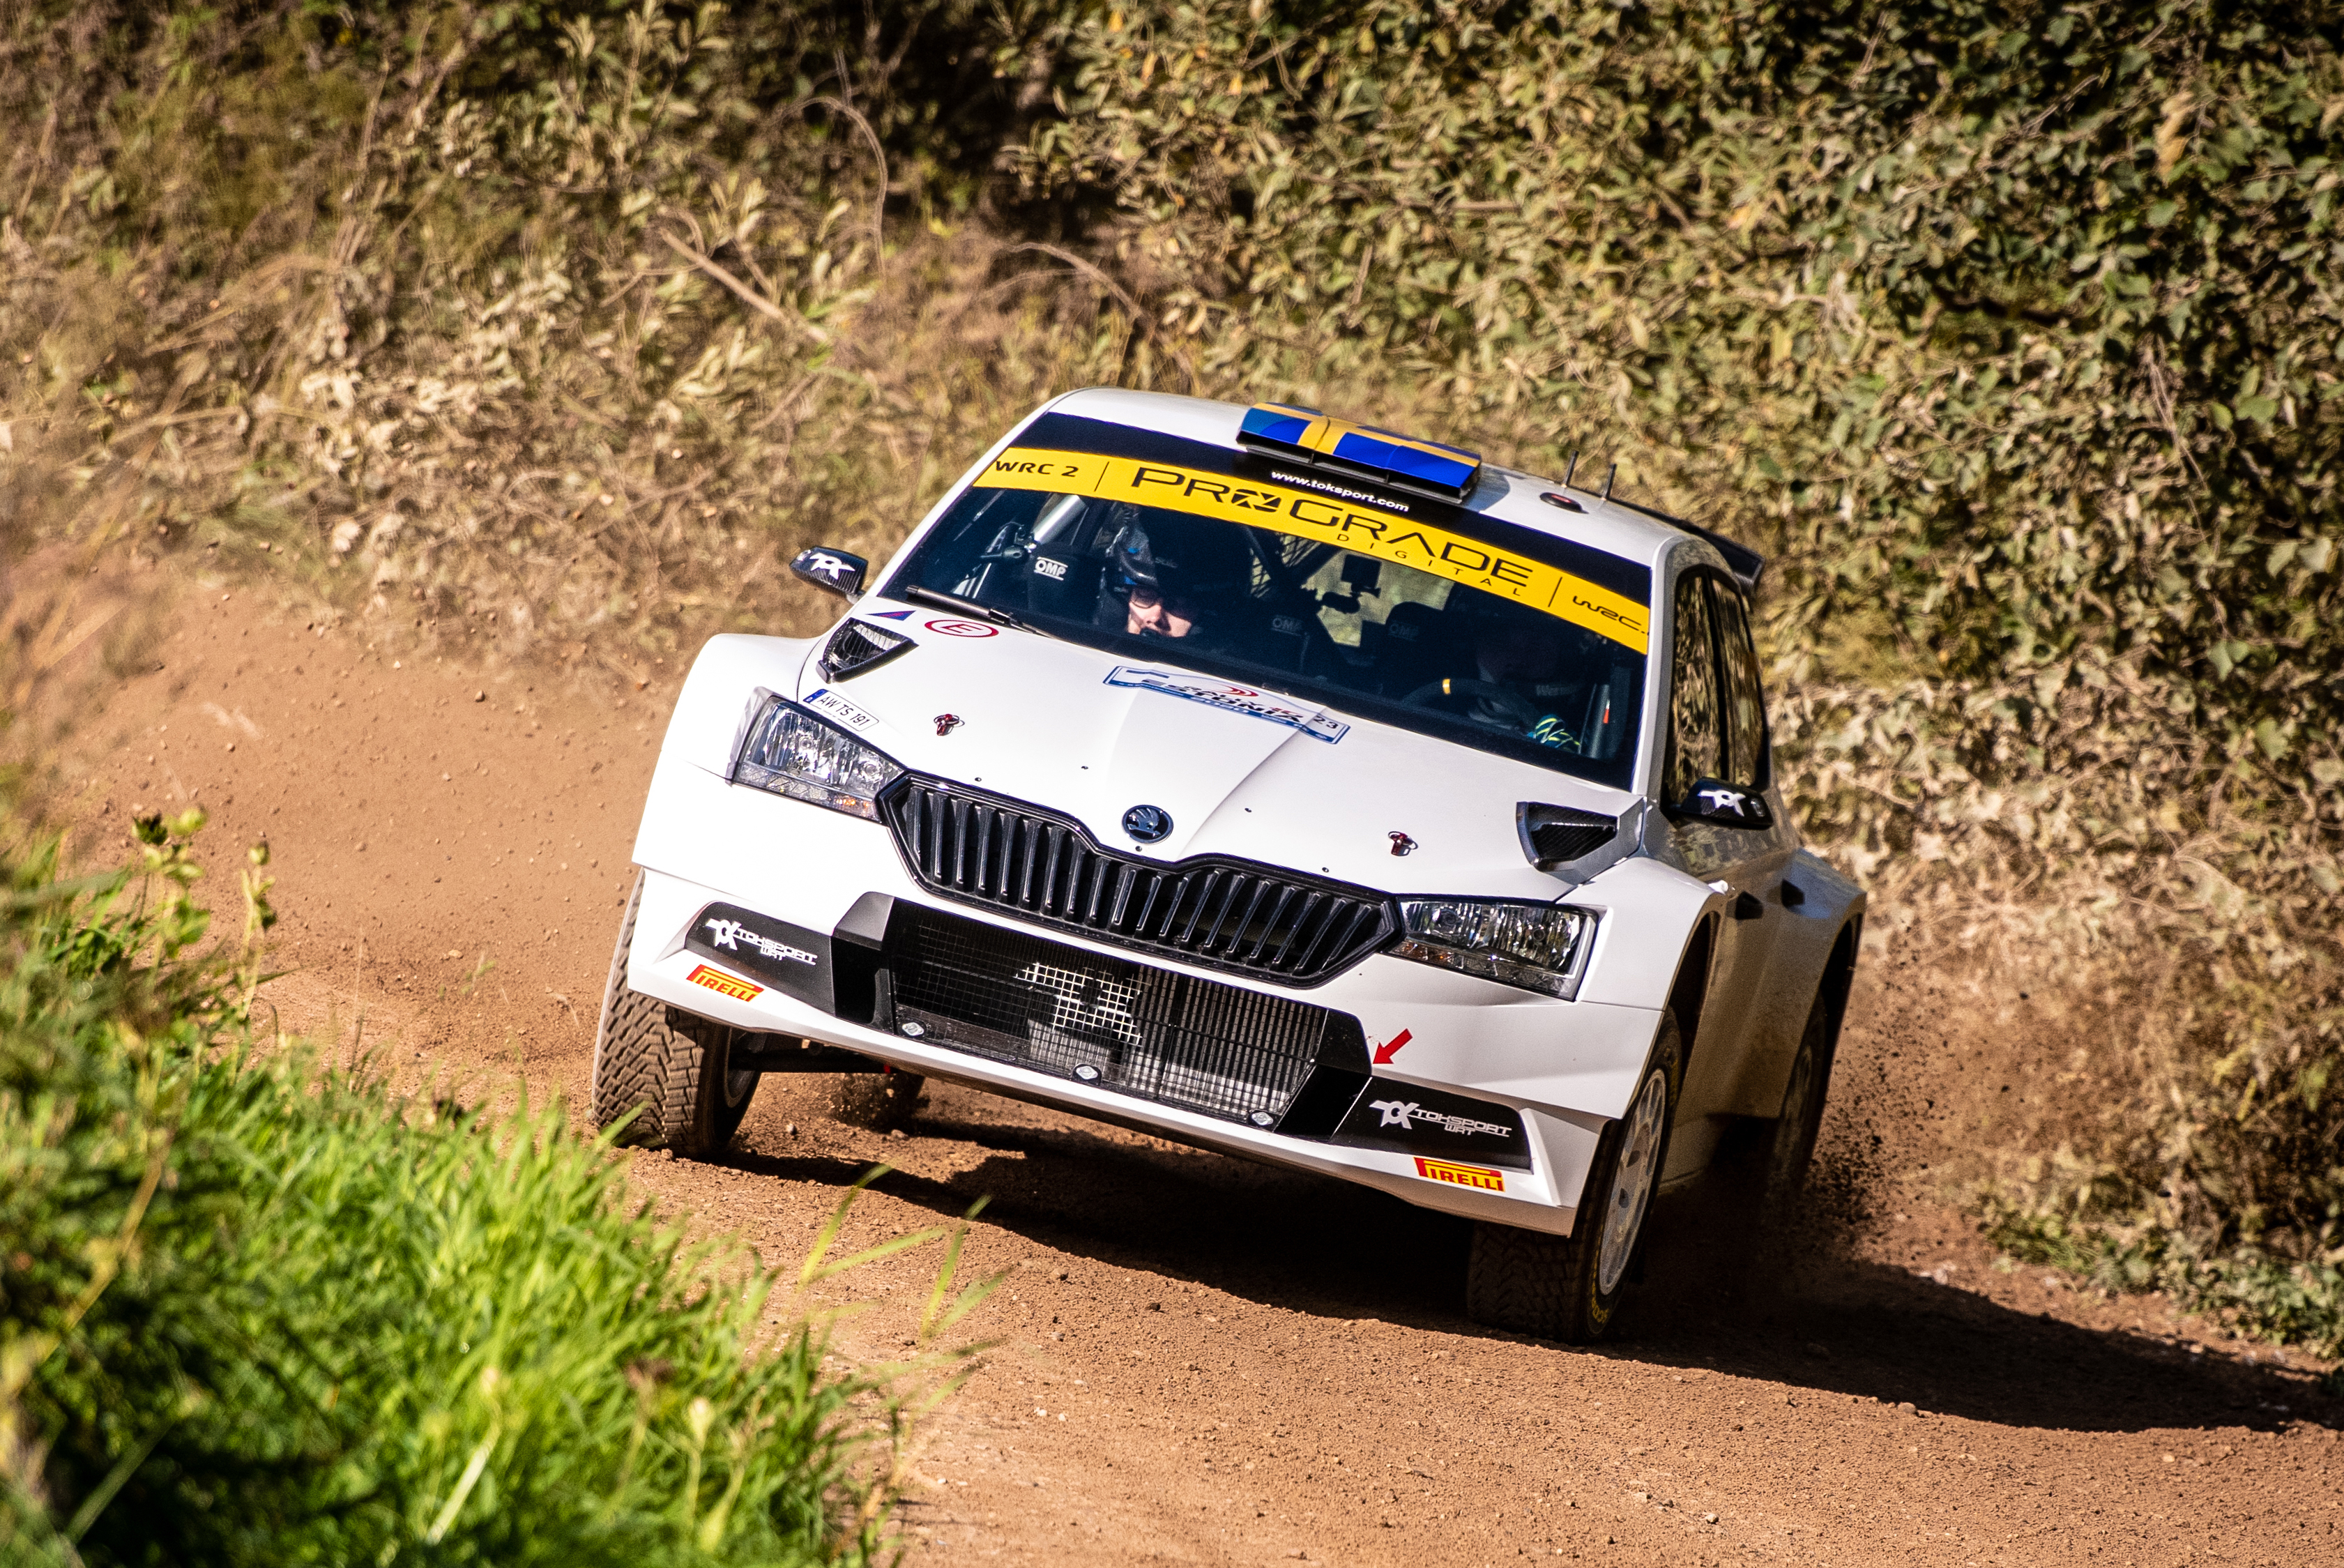 Rally Italia Sardegna: SKODA privateers fight for victories in WRC2 and WRC3 - Image 2